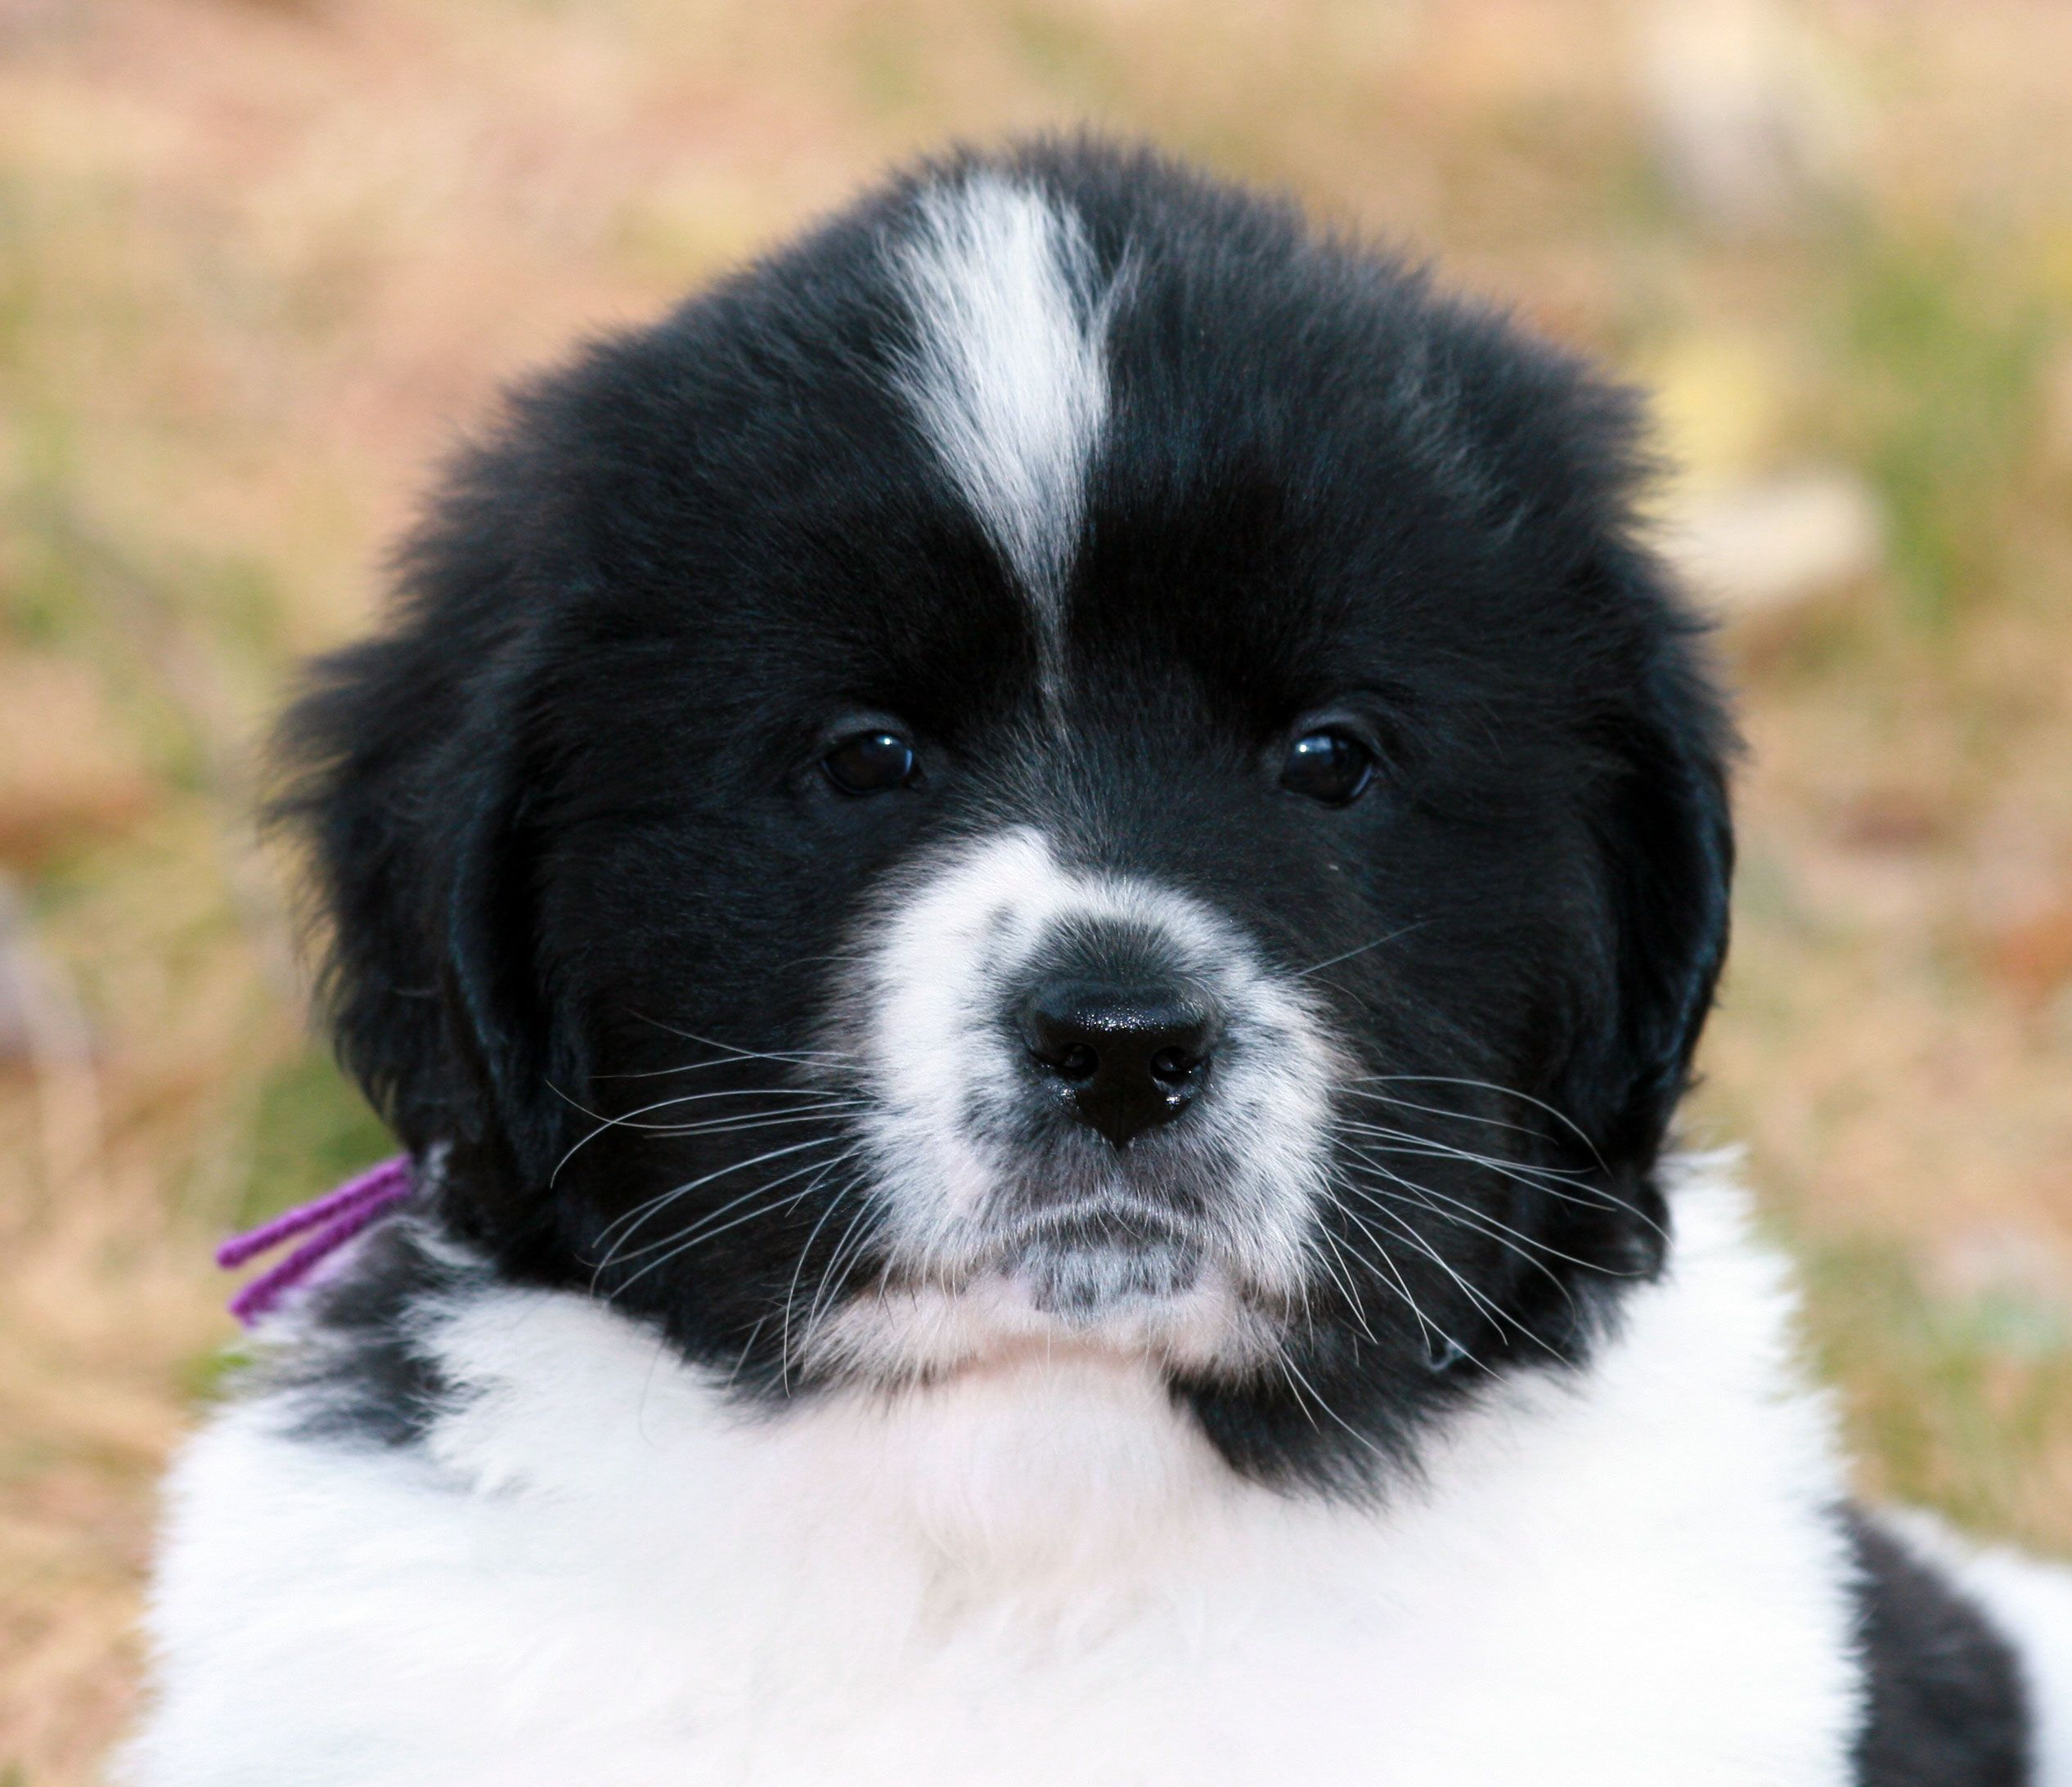 Pin By Jemma Danielle Images On Dogs Dogs Dogs Newfoundland Dog Puppy Newfoundland Puppies Cute Animals